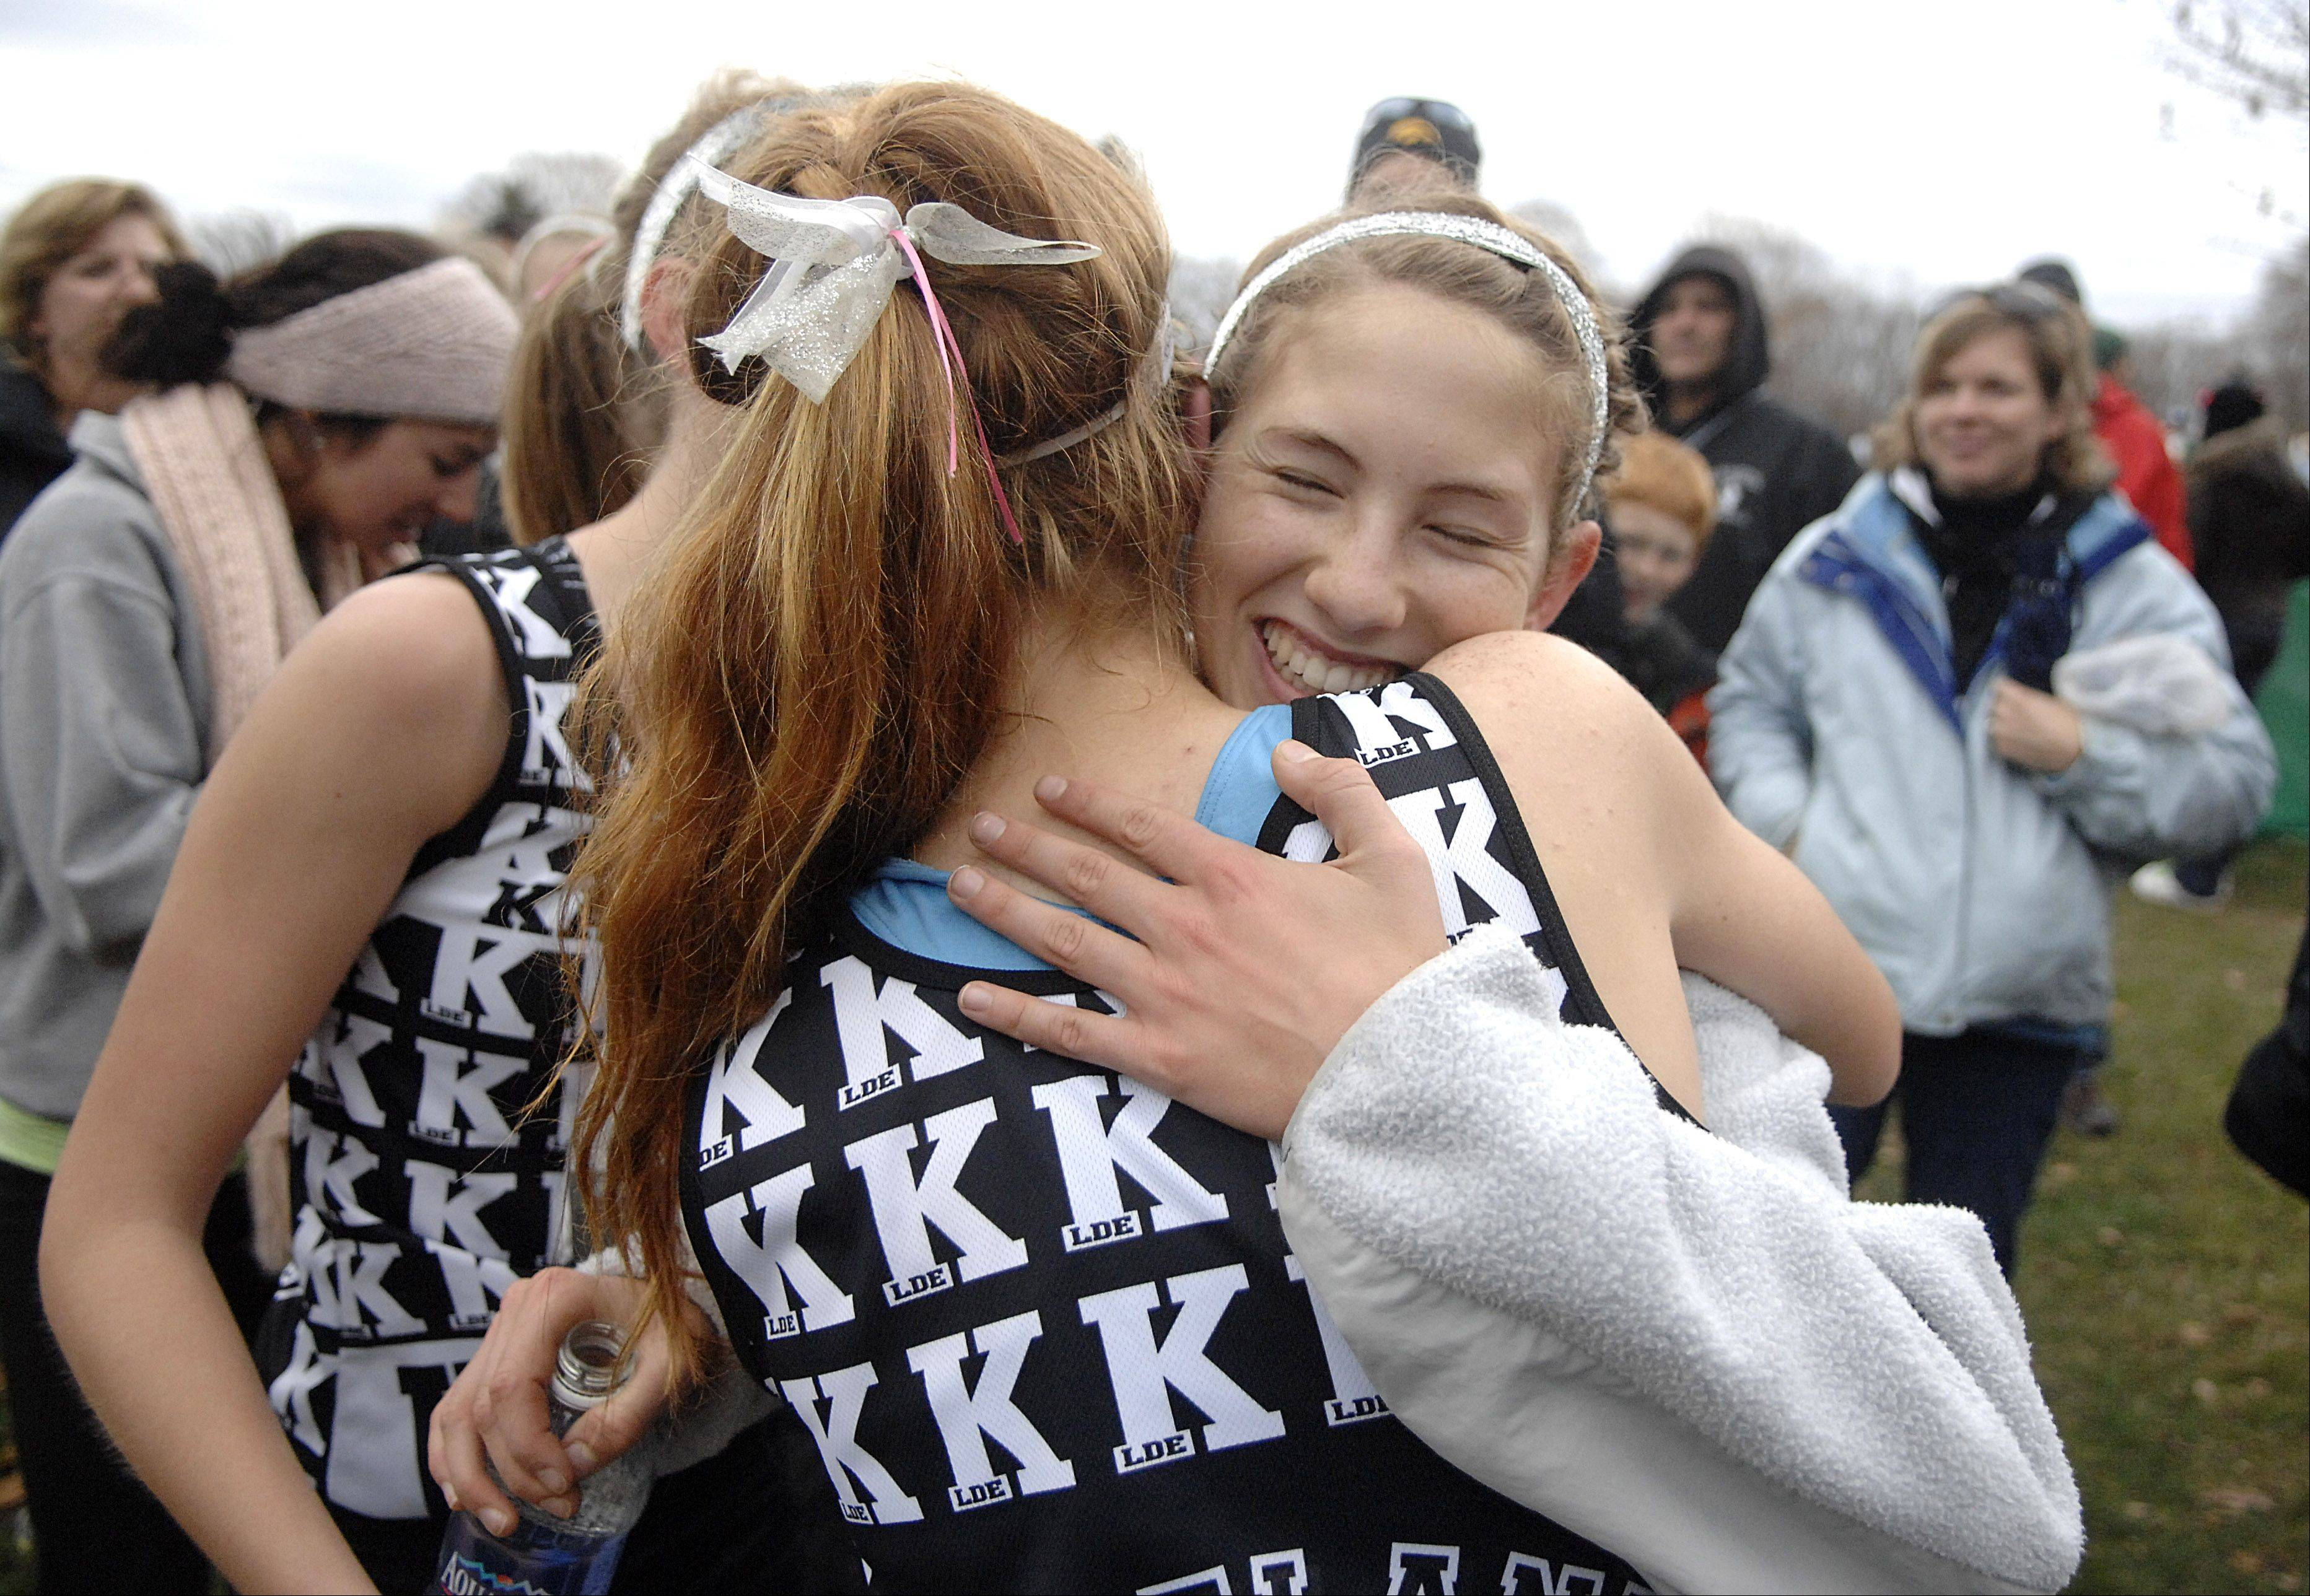 Kaneland's Victoria Clinton gets hugs from teammates Aislinn Losdwig and Sydney Strang after winning the 2A state cross country final in Peoria on Saturday, November 3.